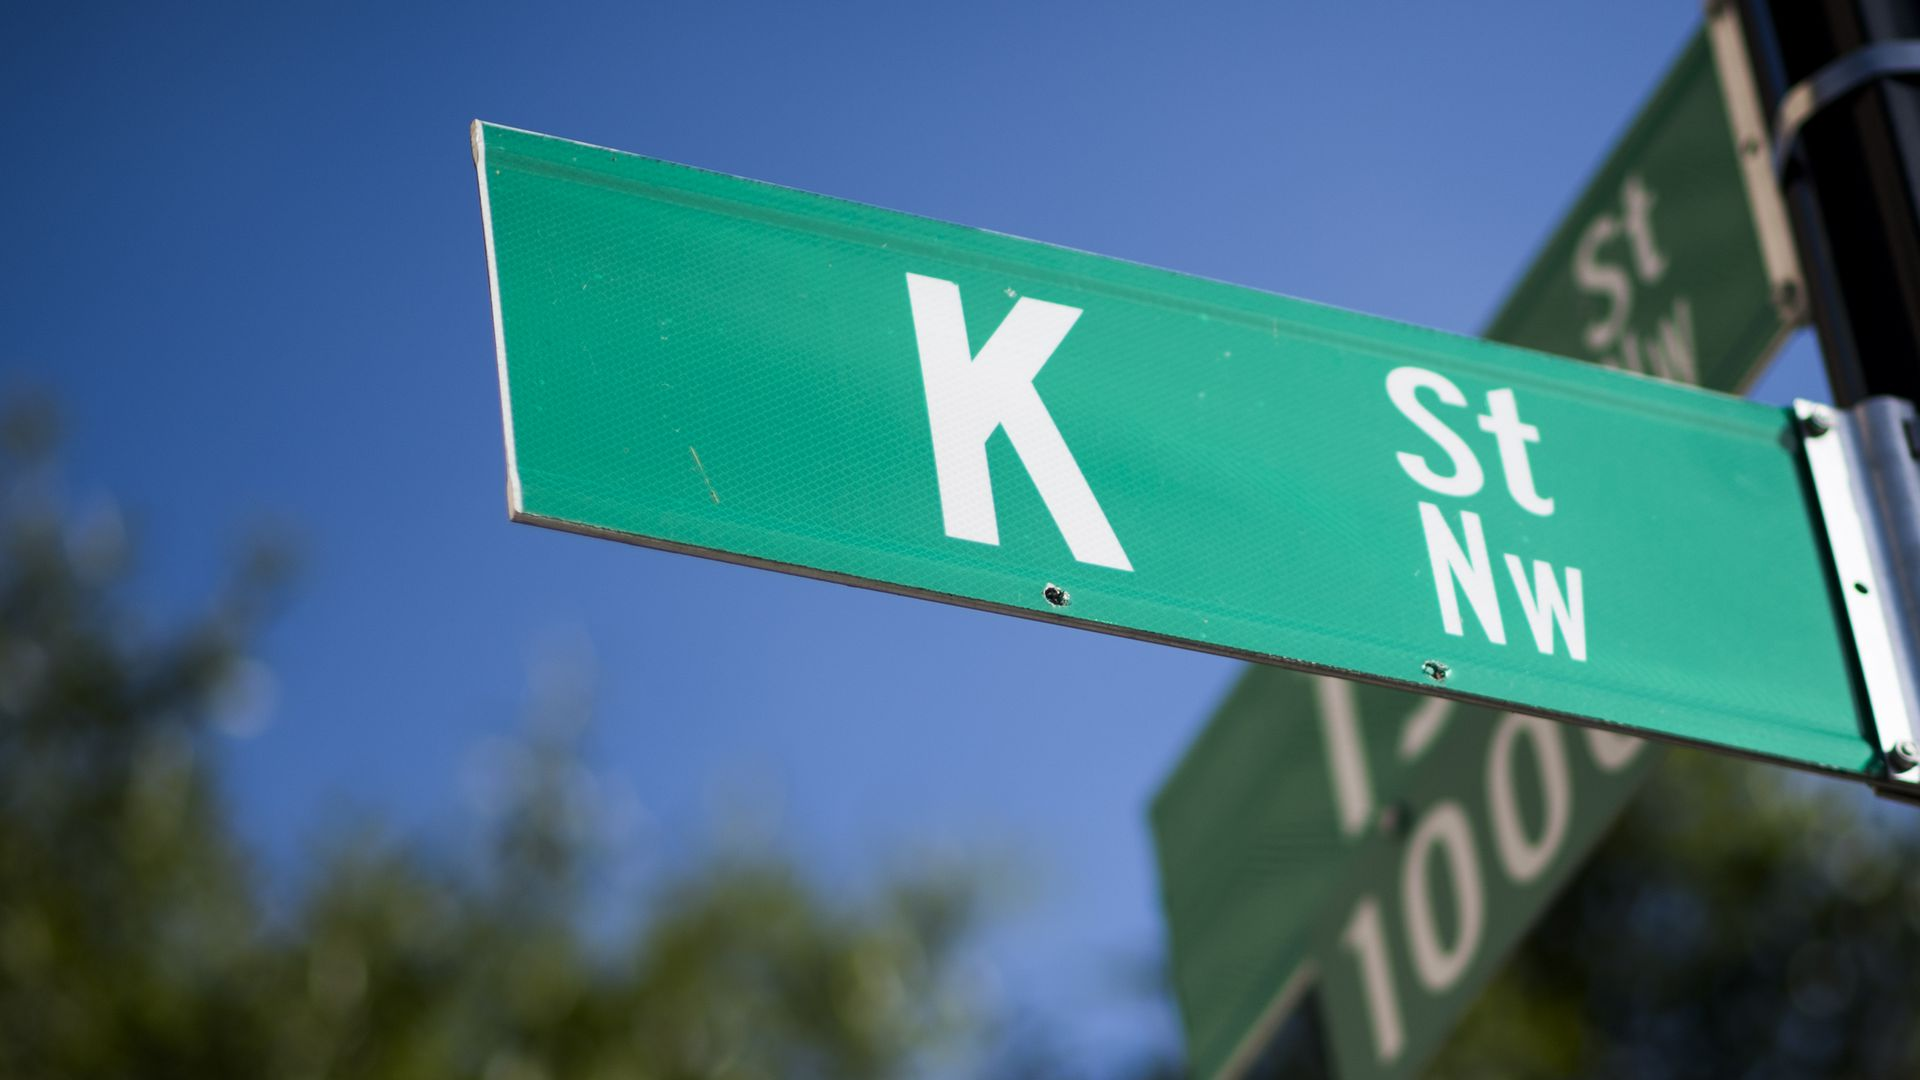 K street sign, in a reference to the lobbying hub in D.C.